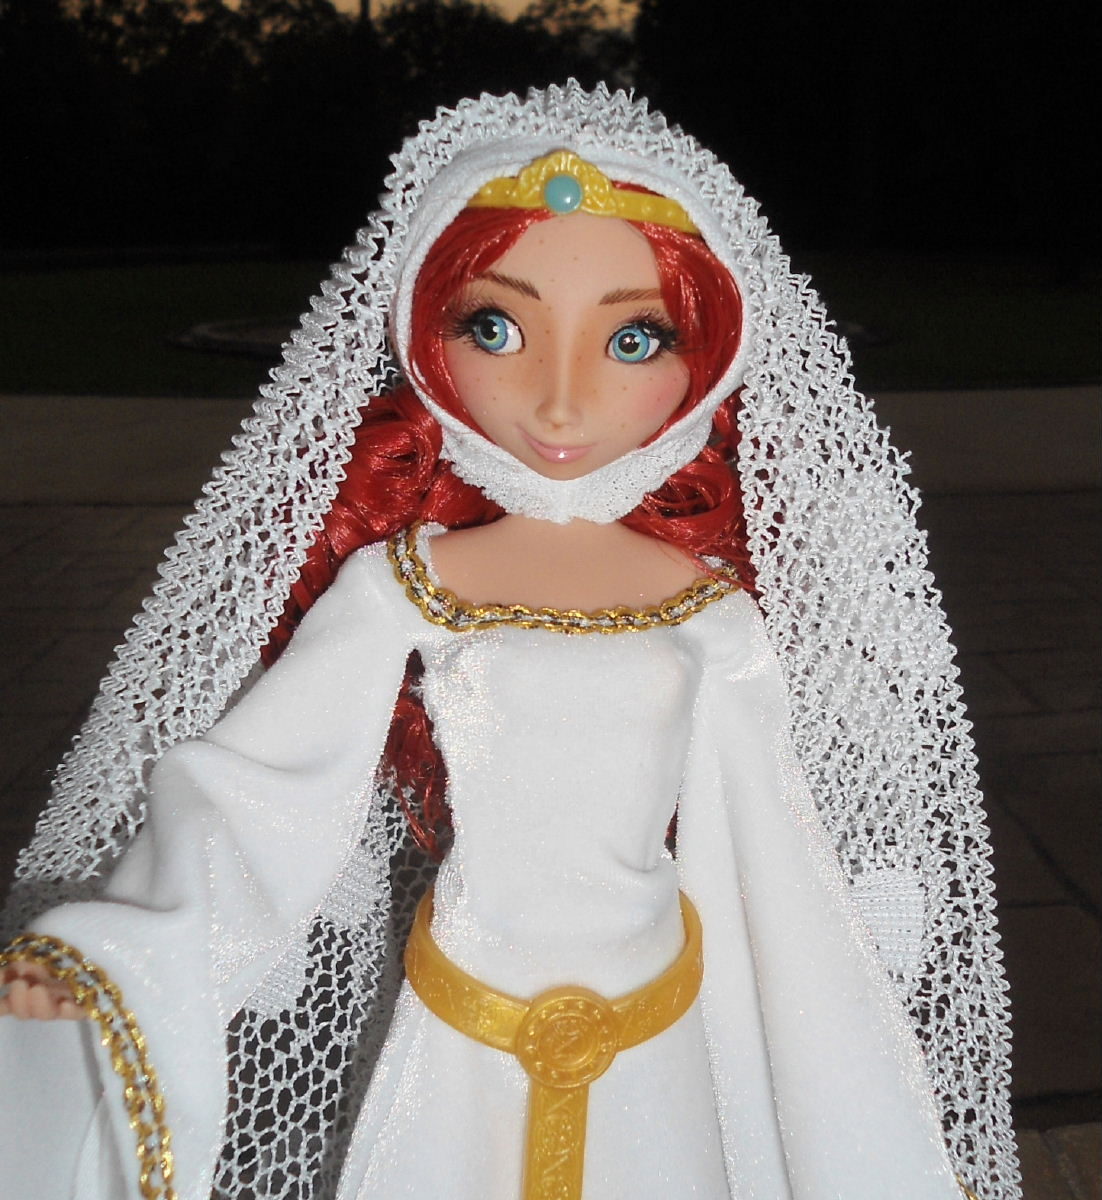 Donald Amp Merida 11 Wedding Doll Set